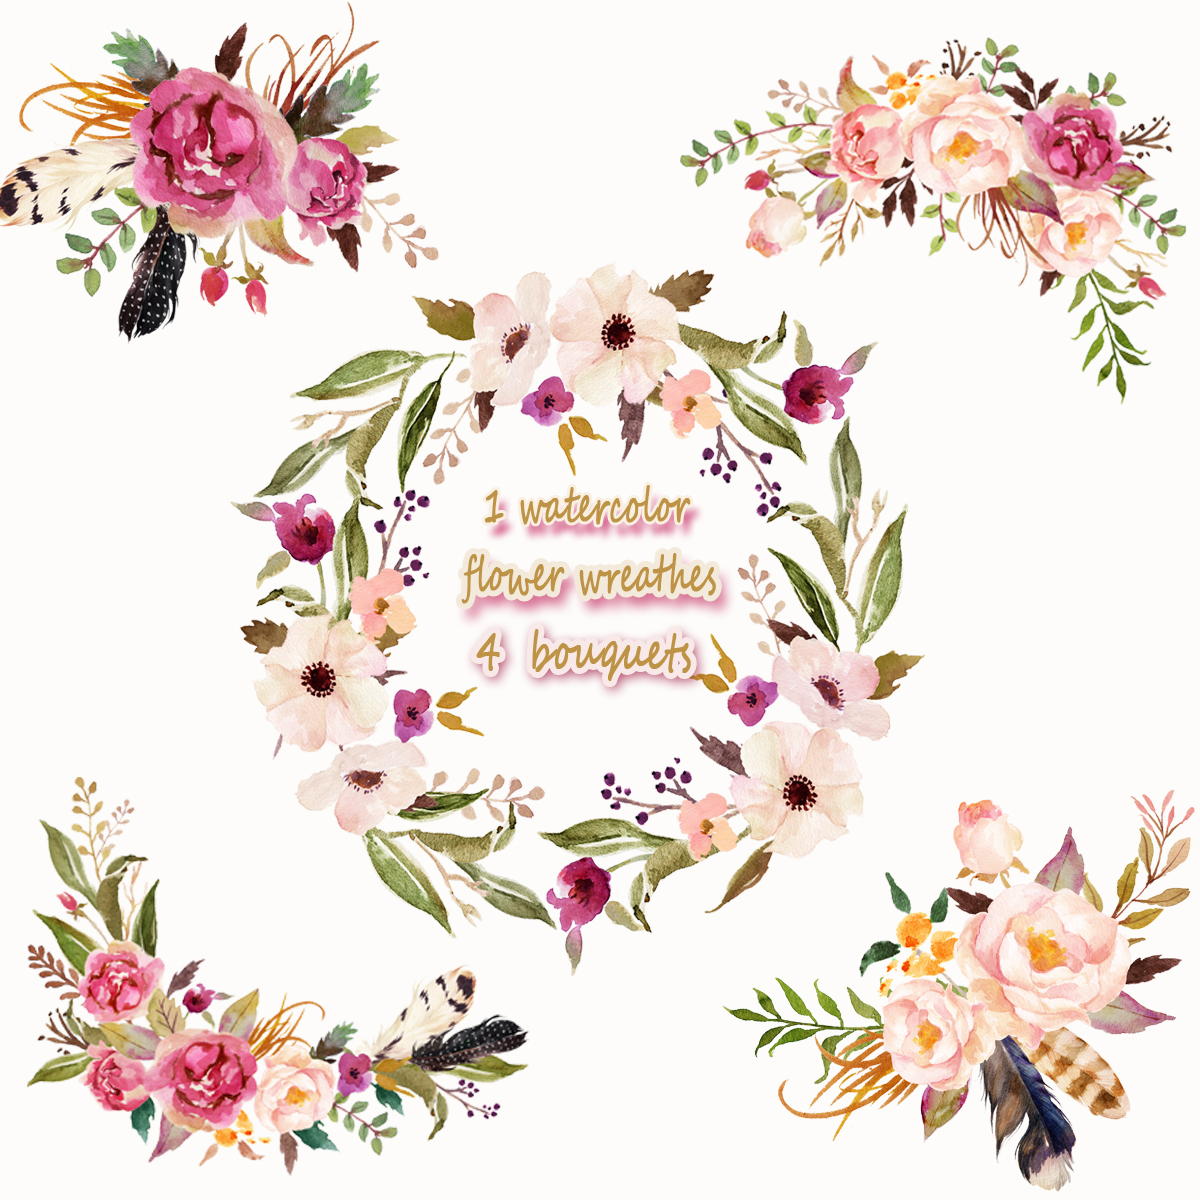 1 watercolor flower wreathes4 flower bouquetsfloral frame png 1 watercolor flower wreathes4 flower bouquetsfloral frame png wedding bouquet arrangement izmirmasajfo